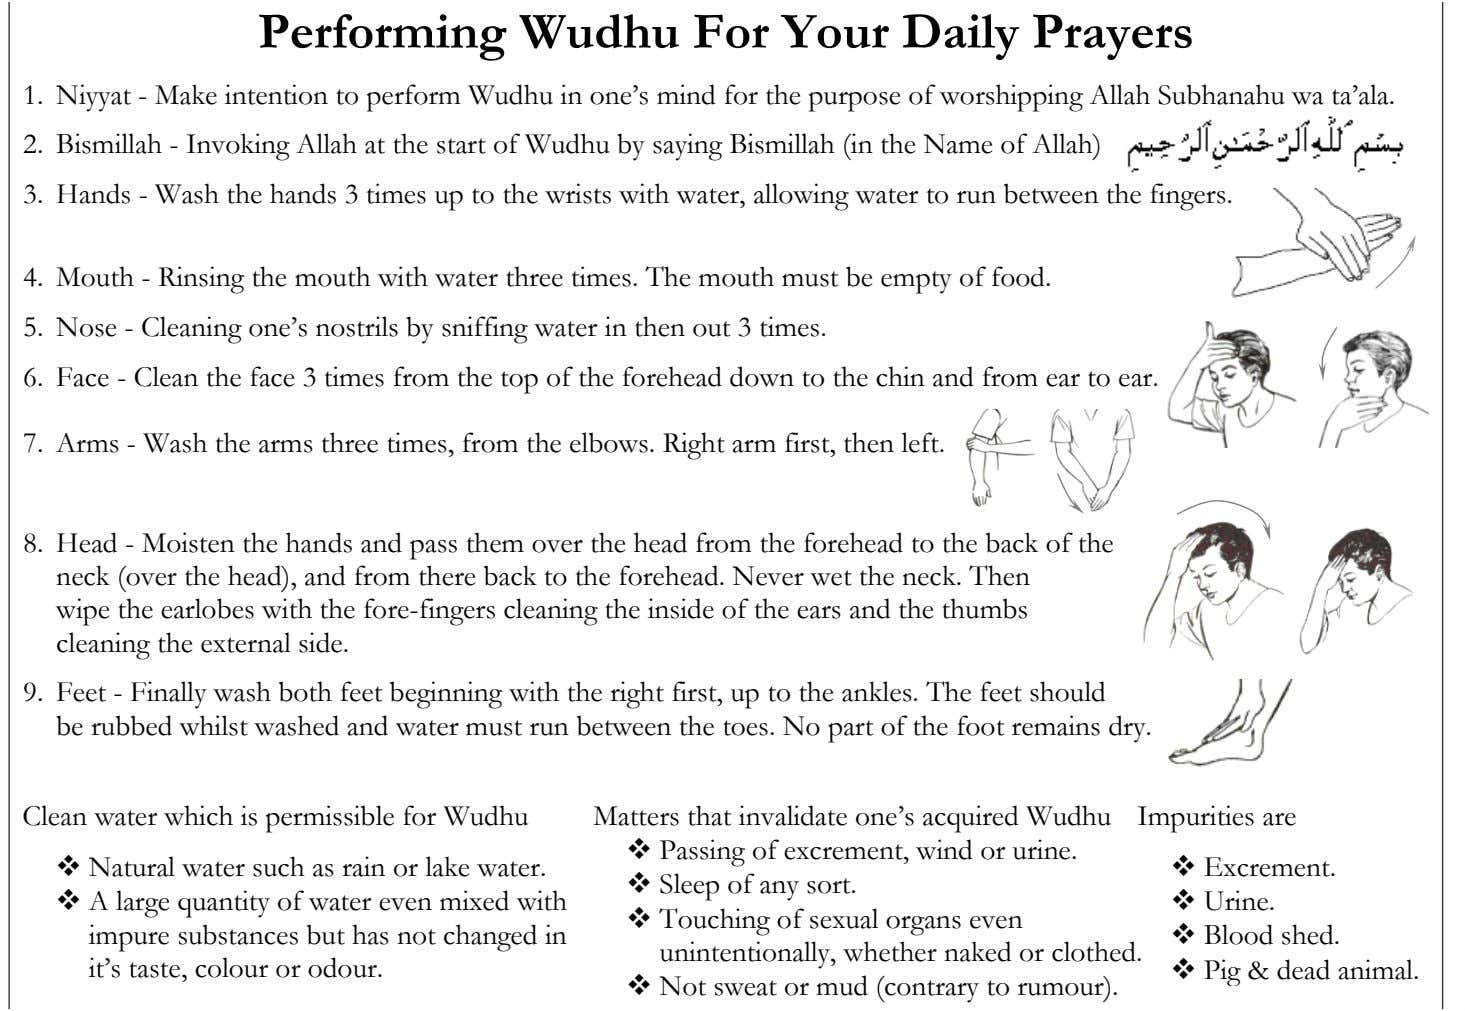 Perfo r ming Wudhu For Your Daily Prayers 1. Niyyat - Make intention to perform Wudhu